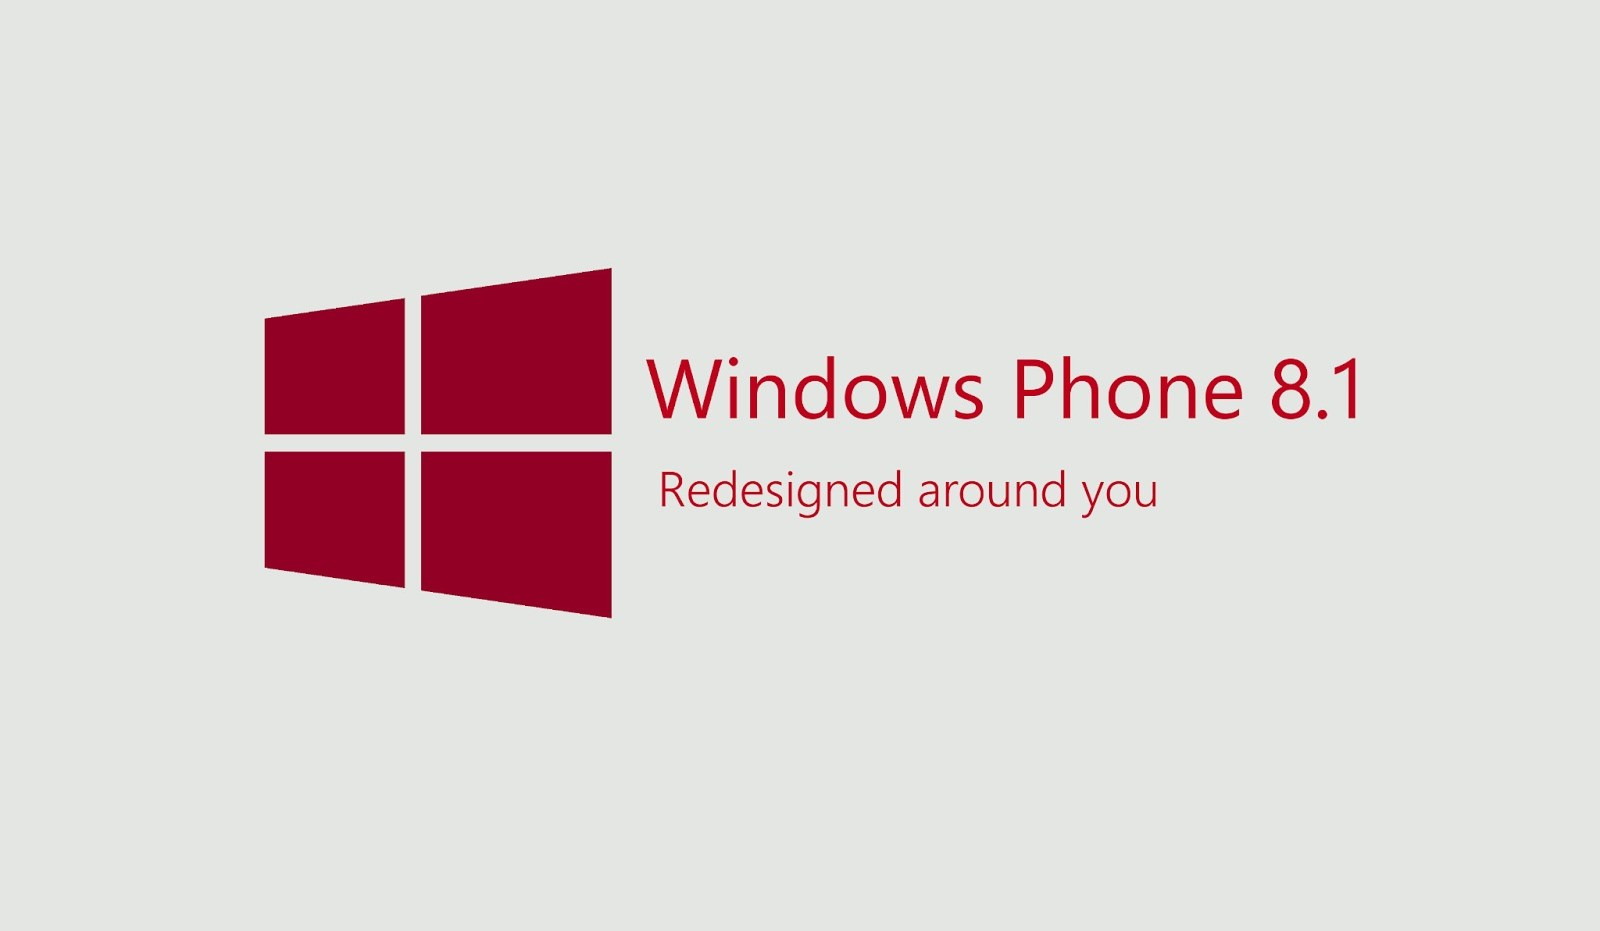 Windows Phone 8.1 è morto, ora cosa succede?